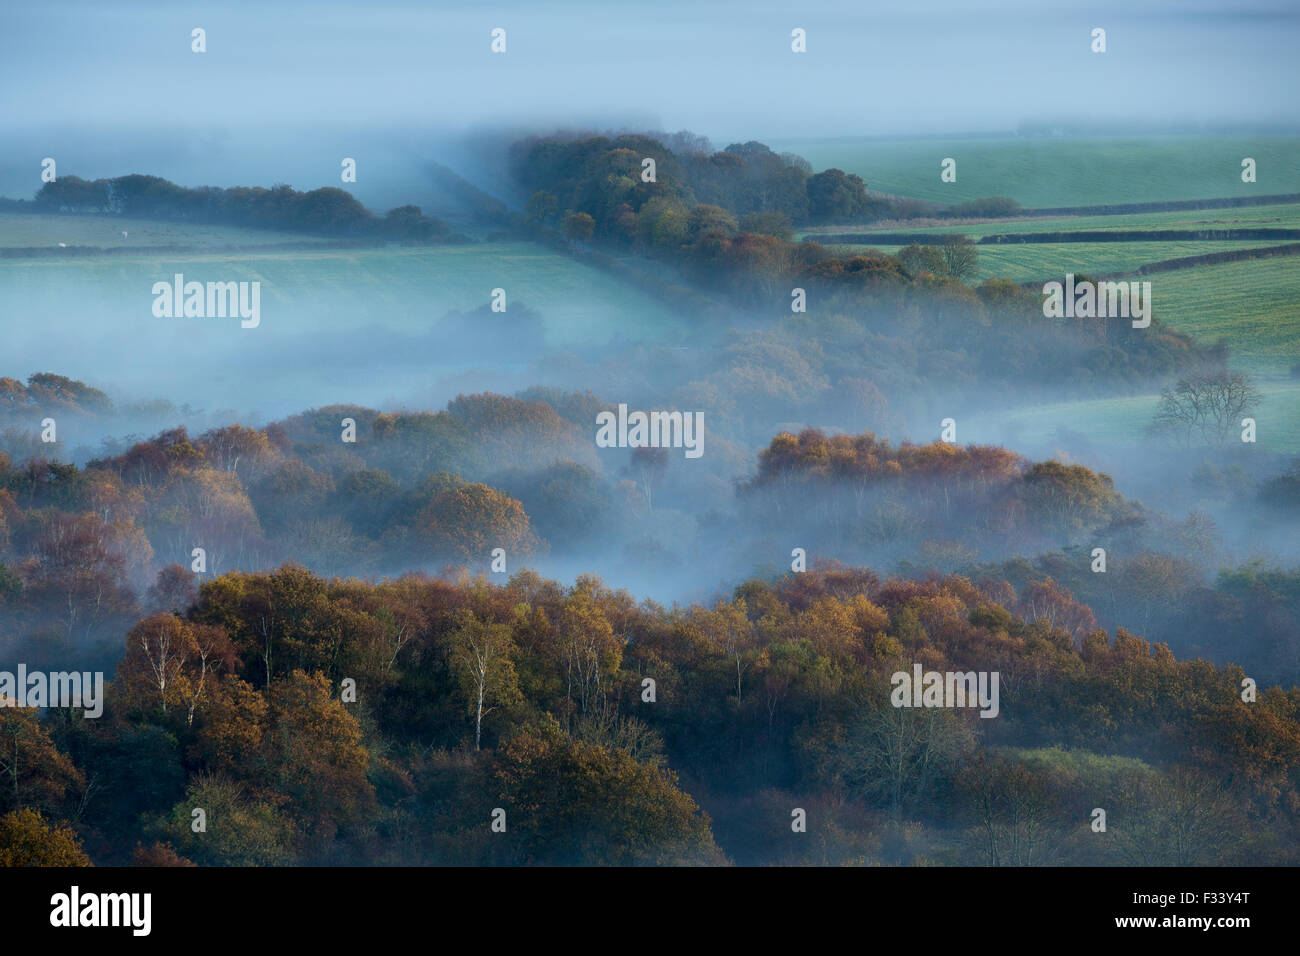 a misty morning on the Isle of Purbeck nr Corfe Castle, Dorset, England - Stock Image